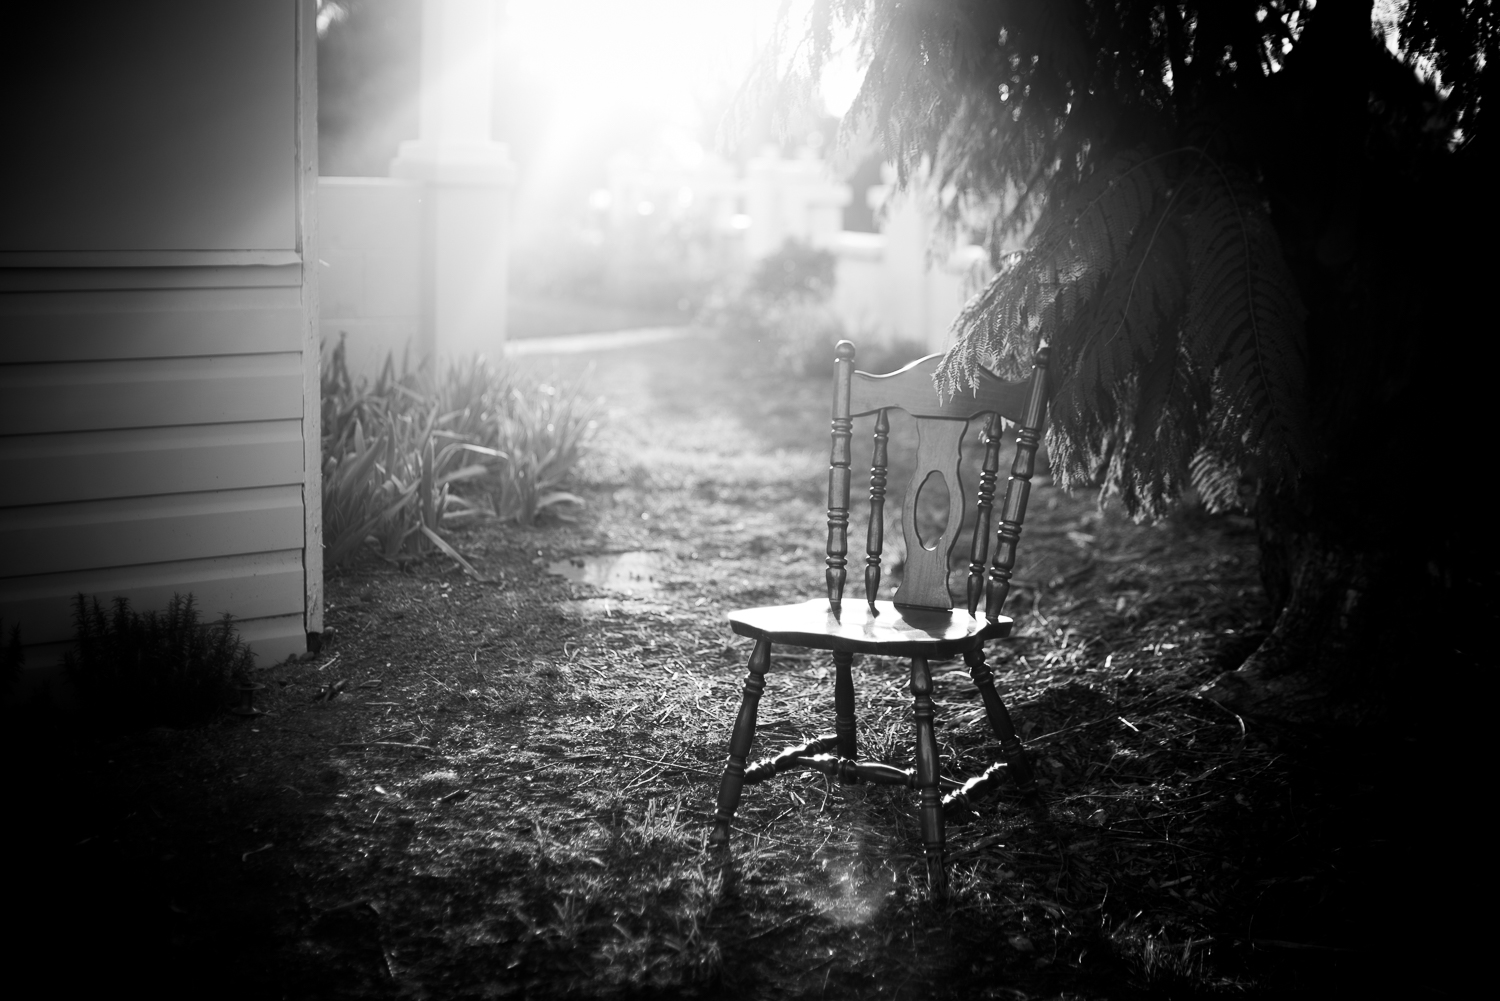 A wooden chair sits in the yard as the aftermoon light shines.